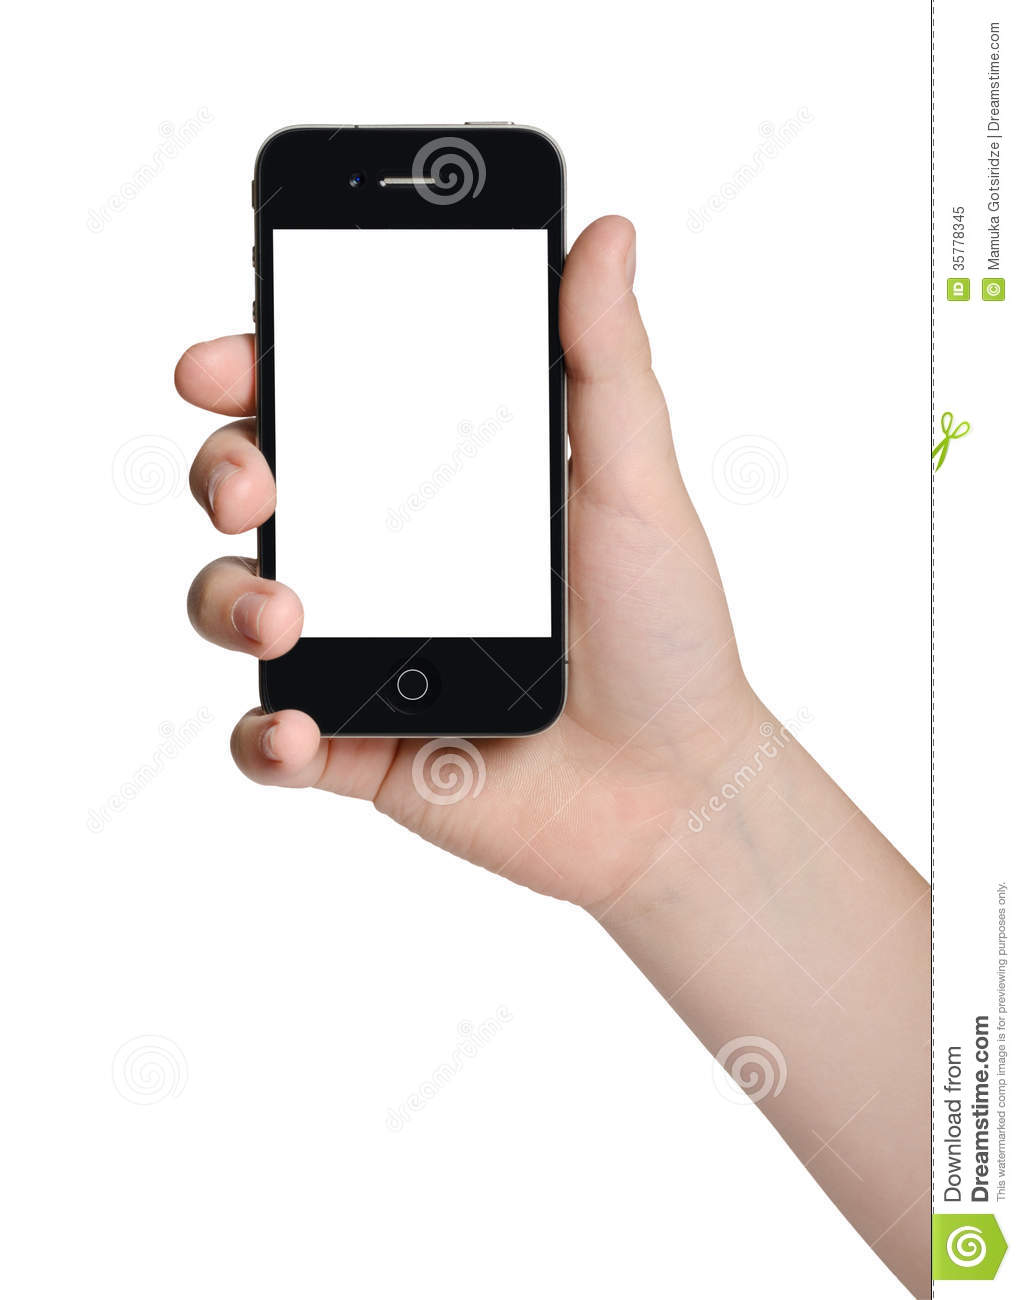 hand holding iphone holding a black phone stock image image of modern 10757